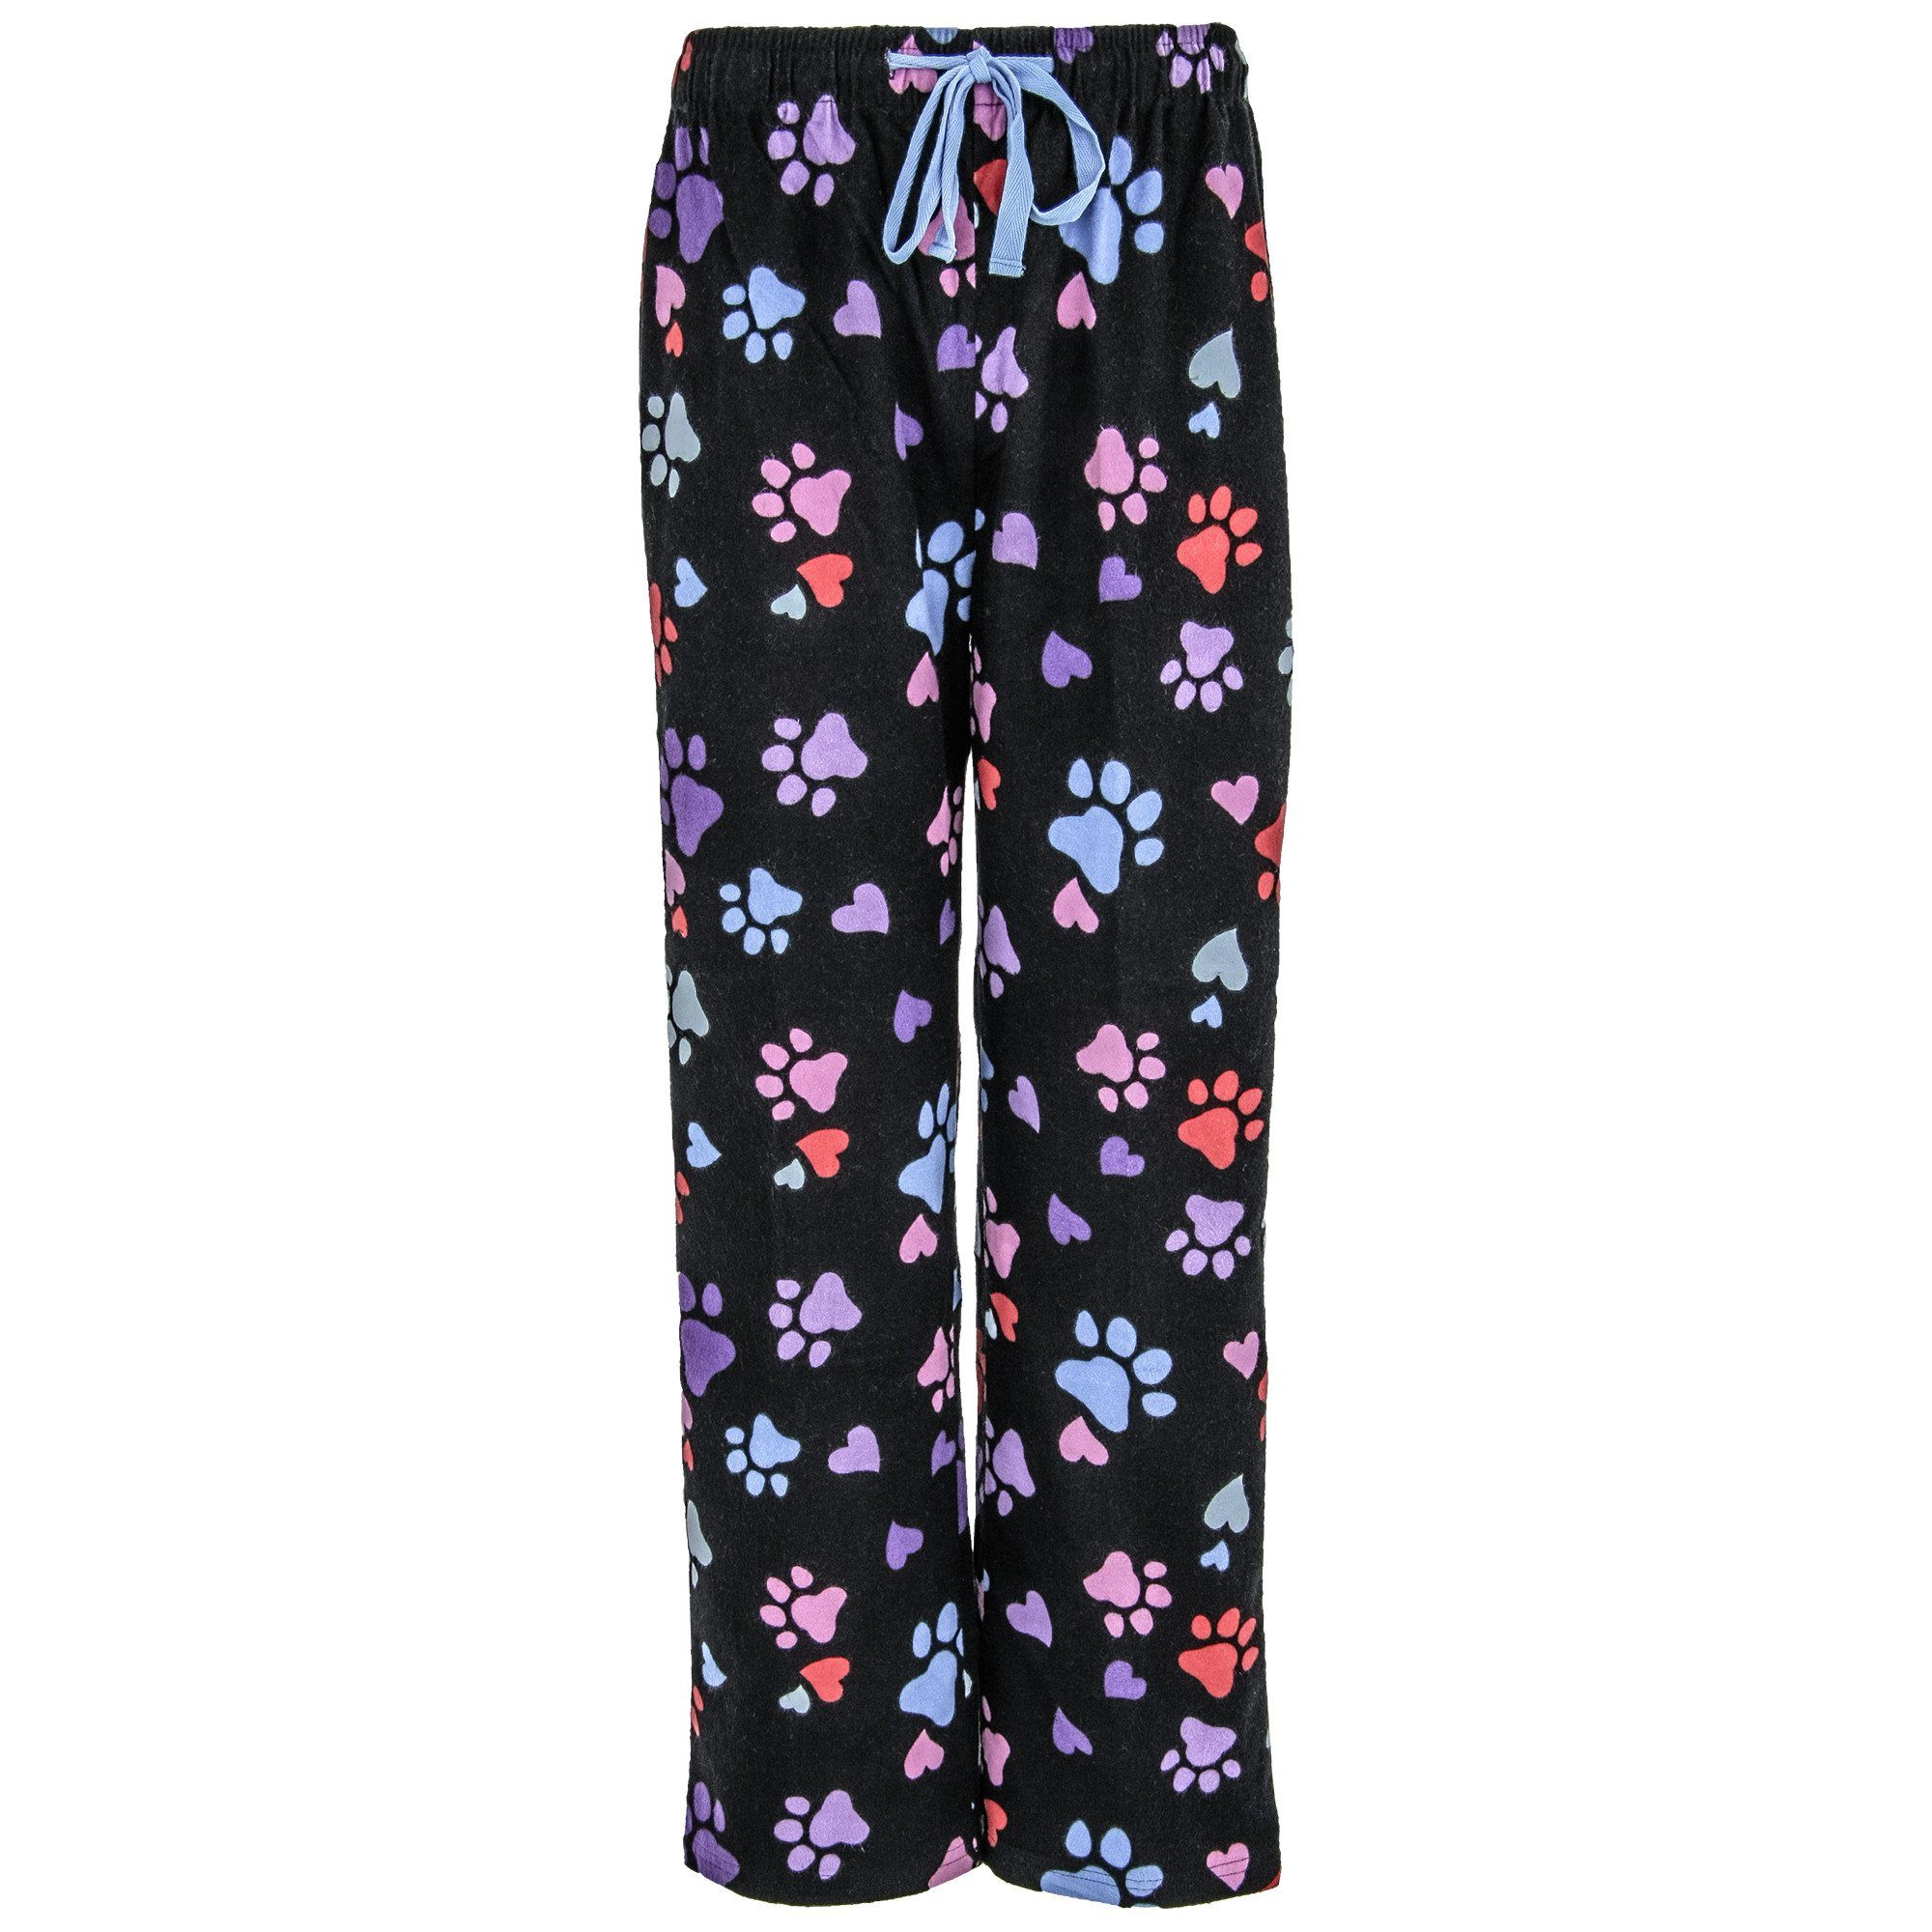 a24a5d7f21c Loving Paws Flannel Pajama Pants| The Animal Rescue Site